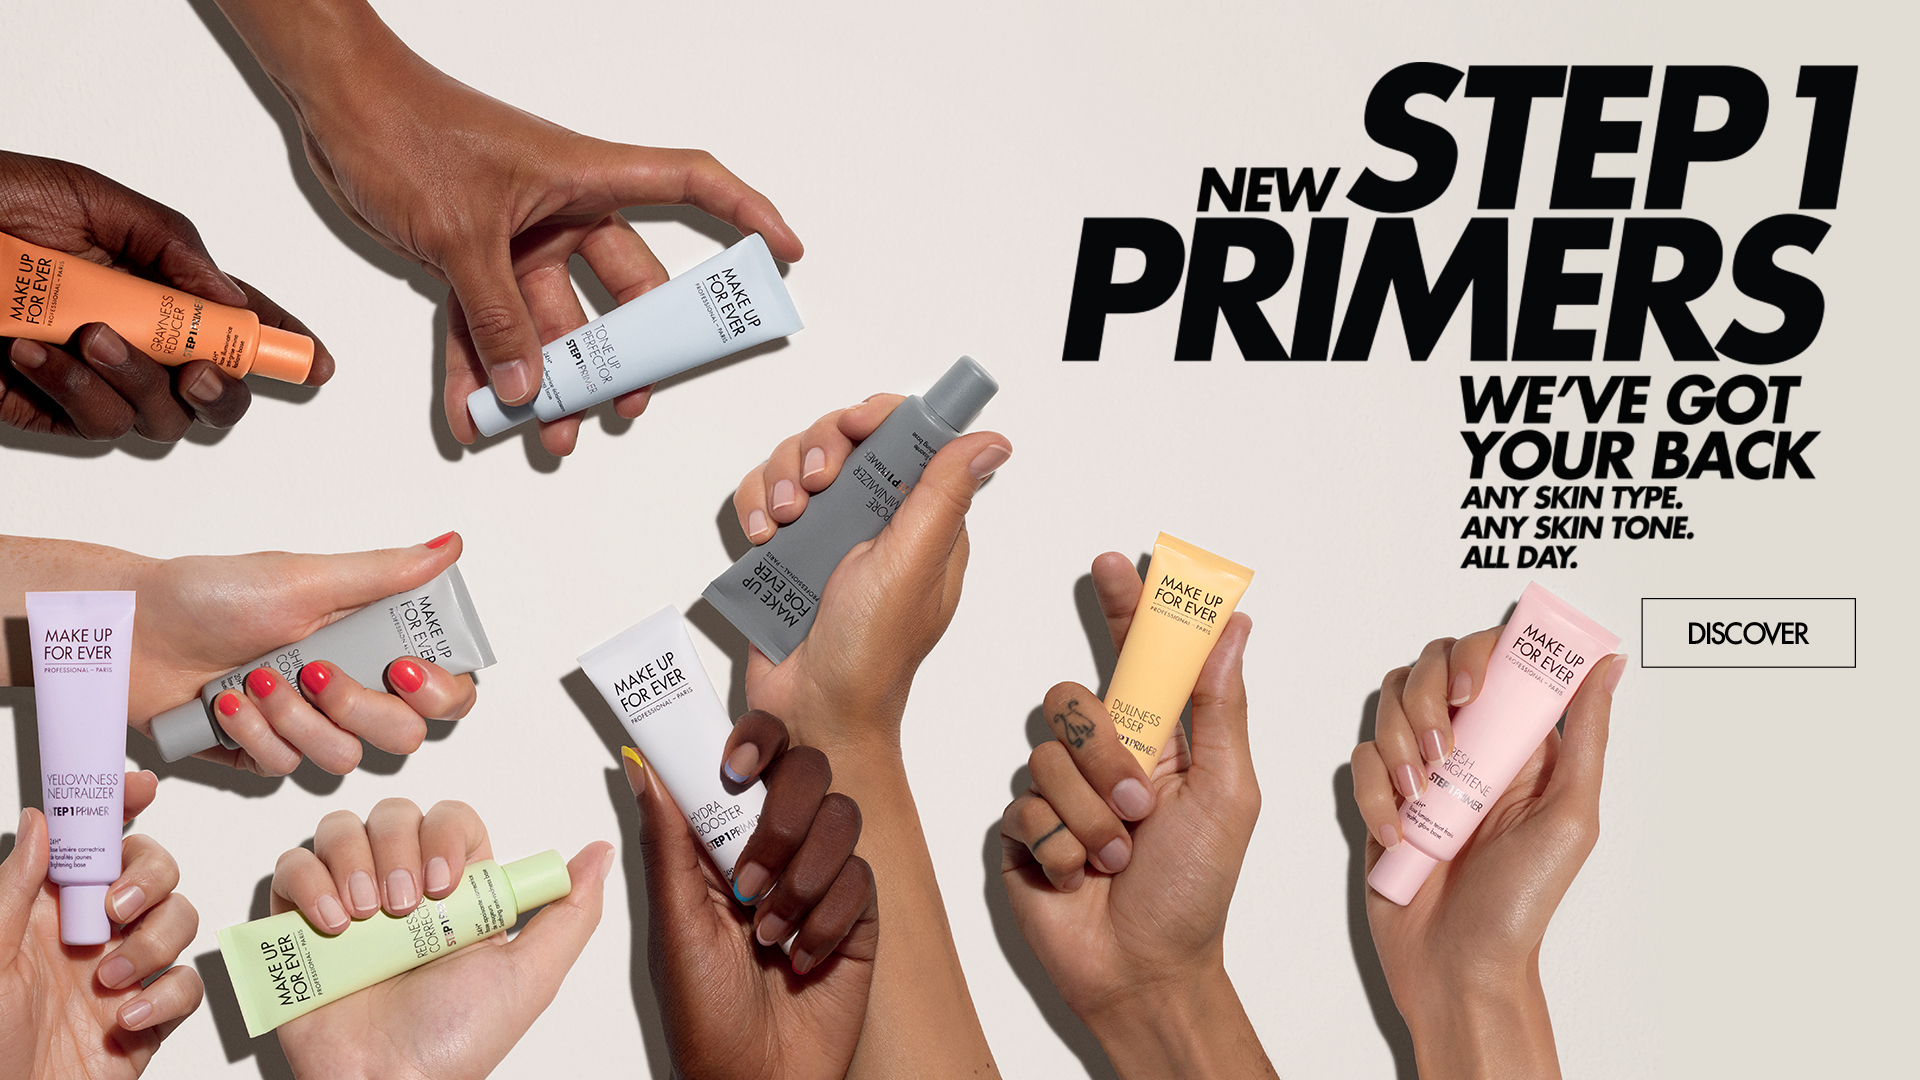 New Step 1 Primers - Any skin type - Any skin tone - All day